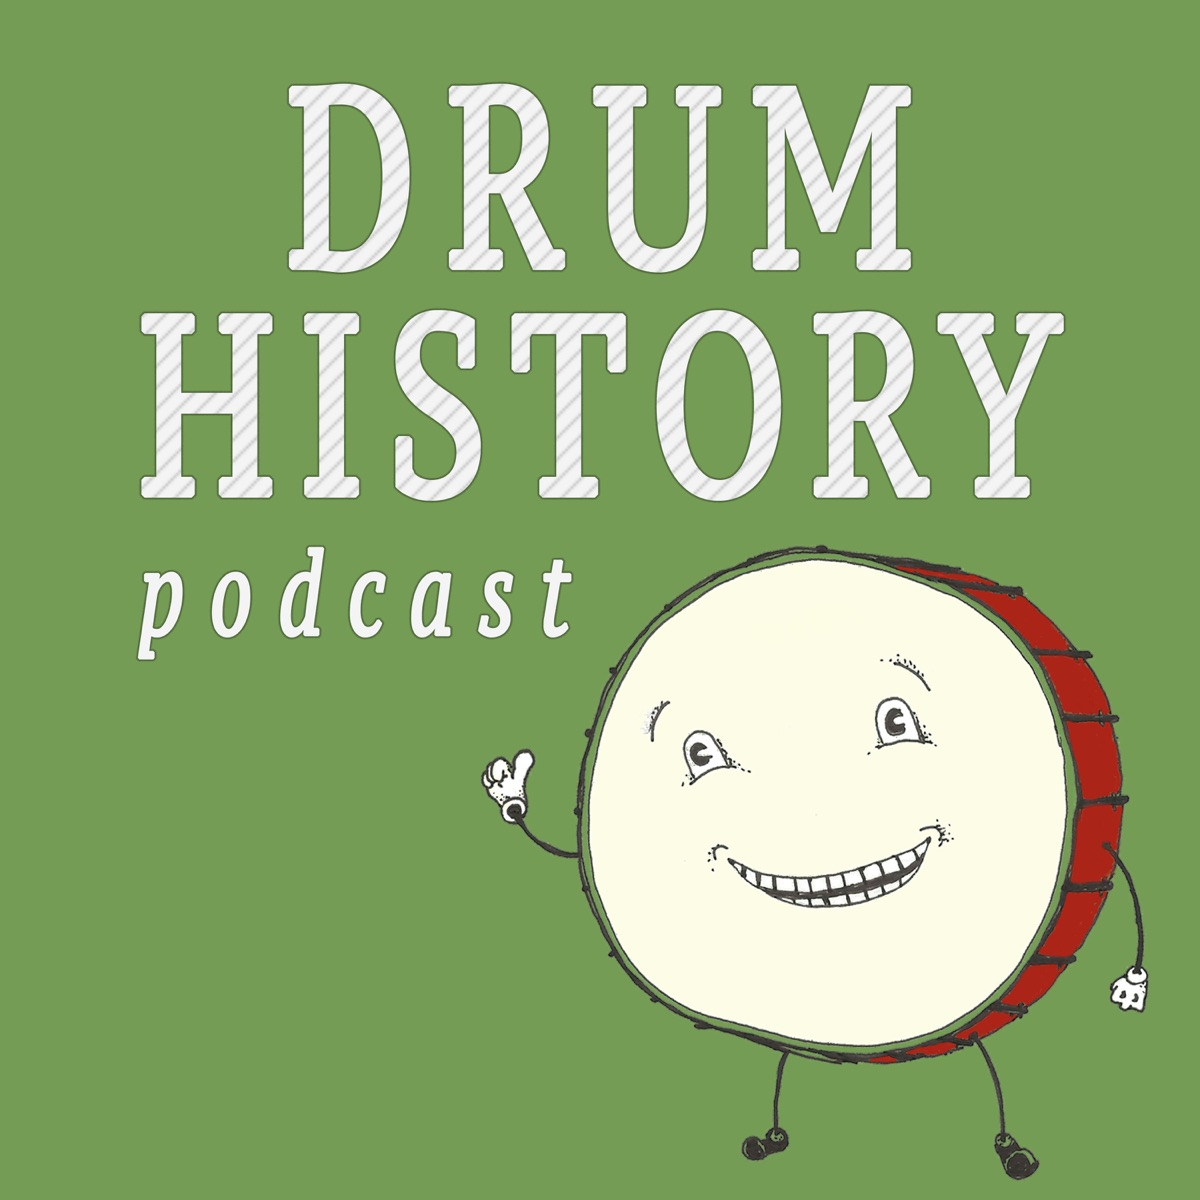 Rob Cook talks about the Chicago Drum Show Plus George Way History